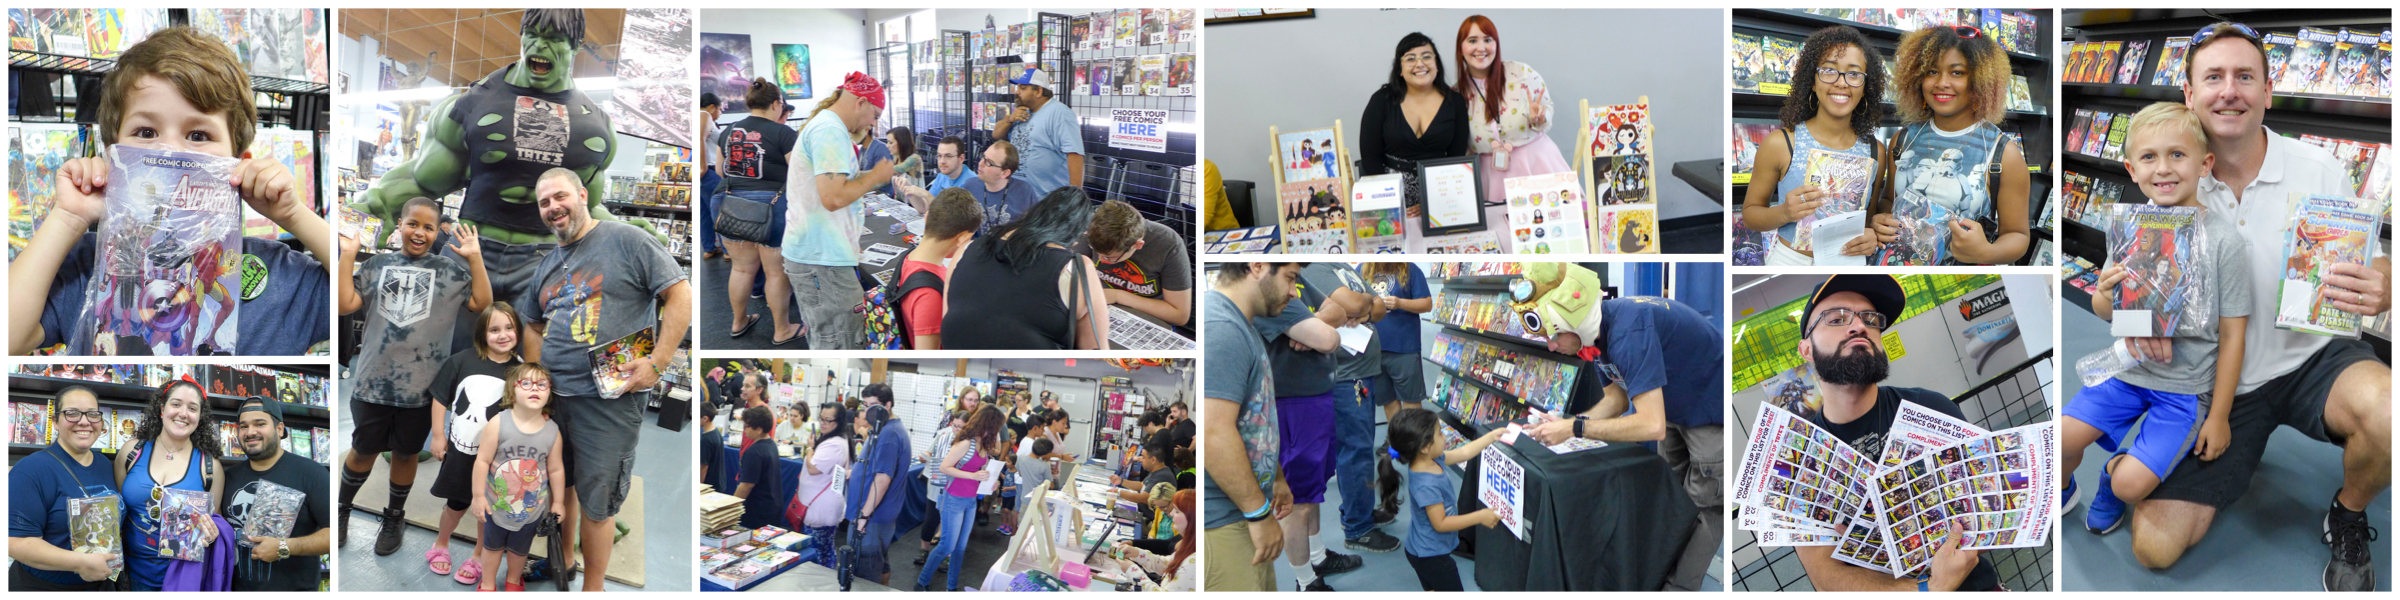 FCBD2018_photocollage_longrecrangle